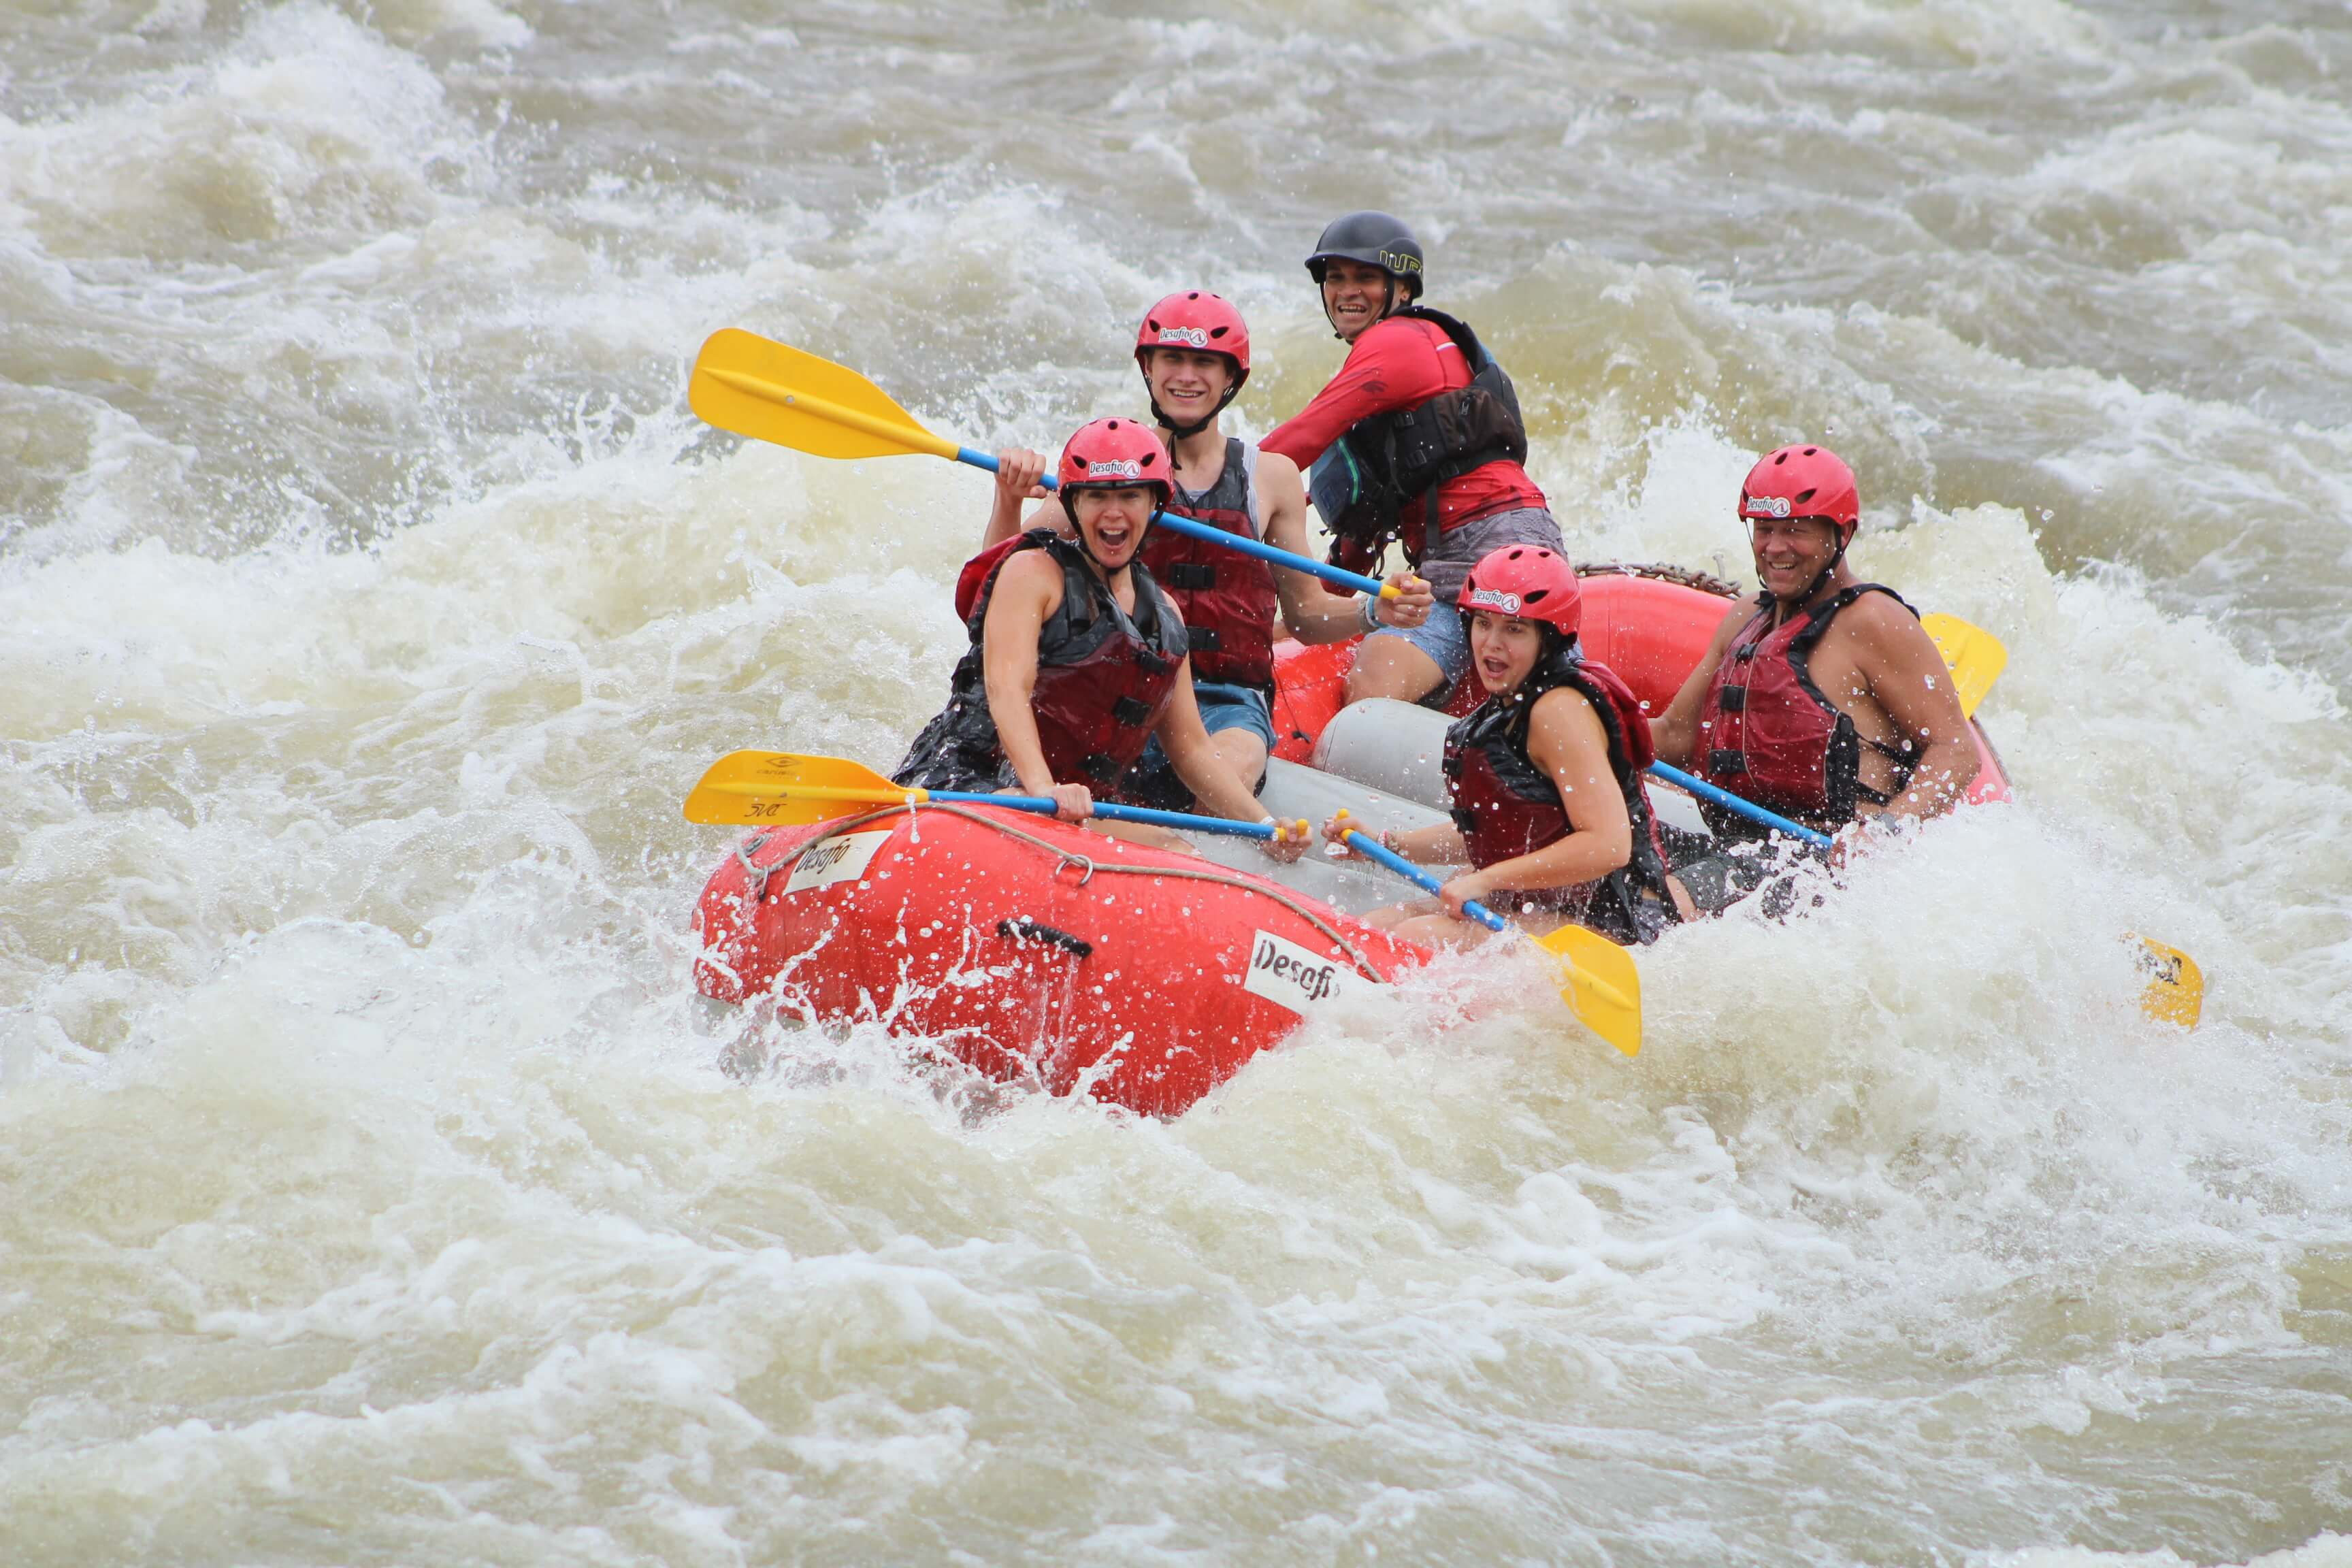 Get ready for one of the most-extreme white water rafting trips in Costa Rica!